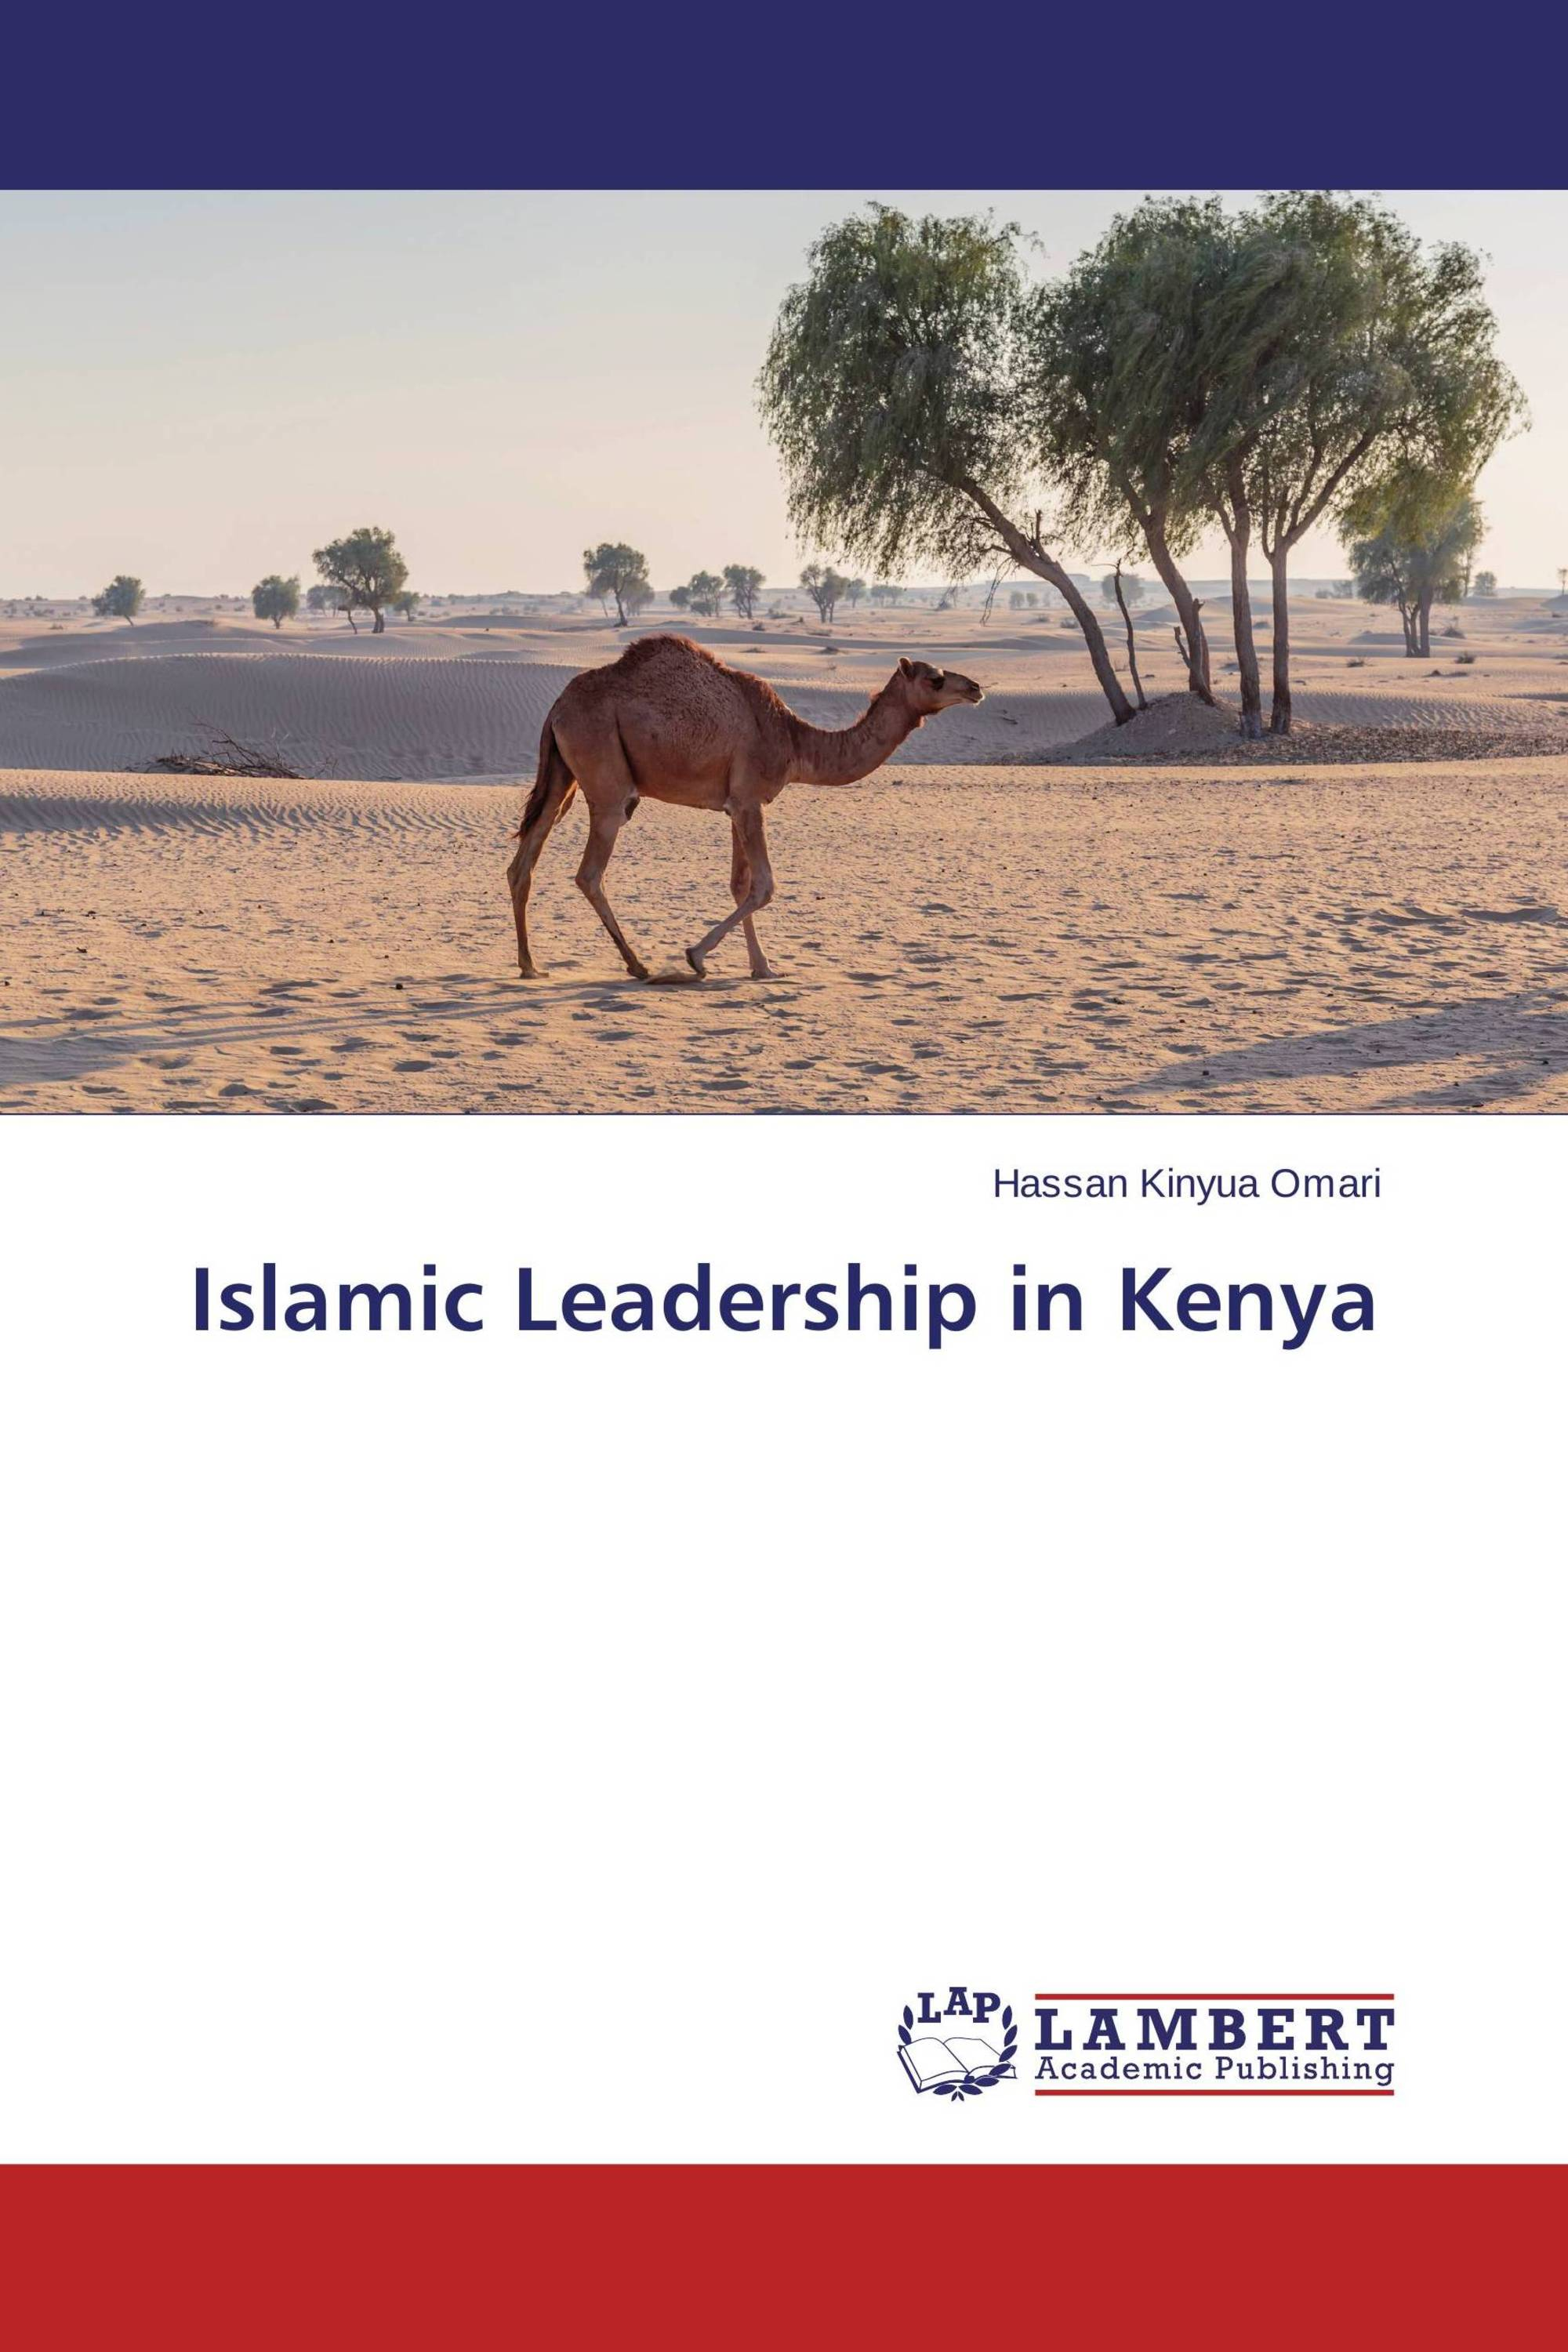 Islamic Leadership in Kenya